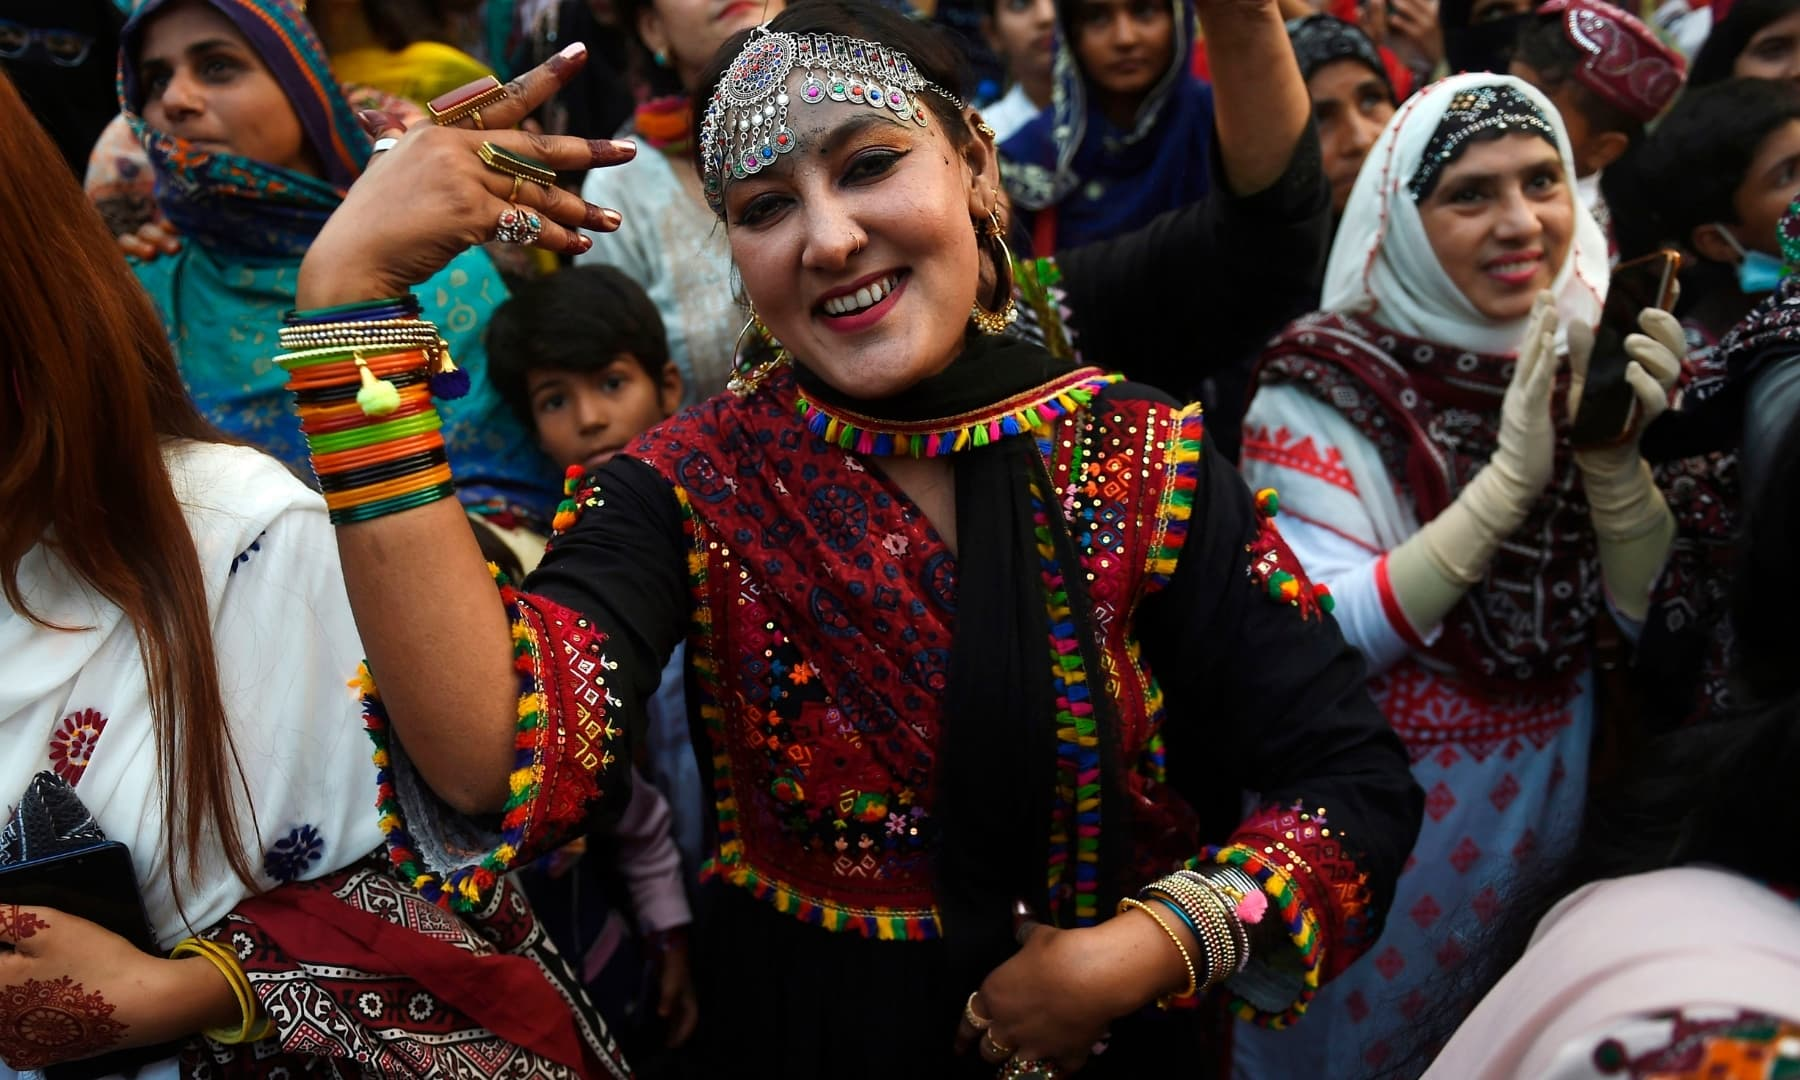 People wearing traditional dresses gather to celebrate the Sindh Culture Day in Karachi. — AFP